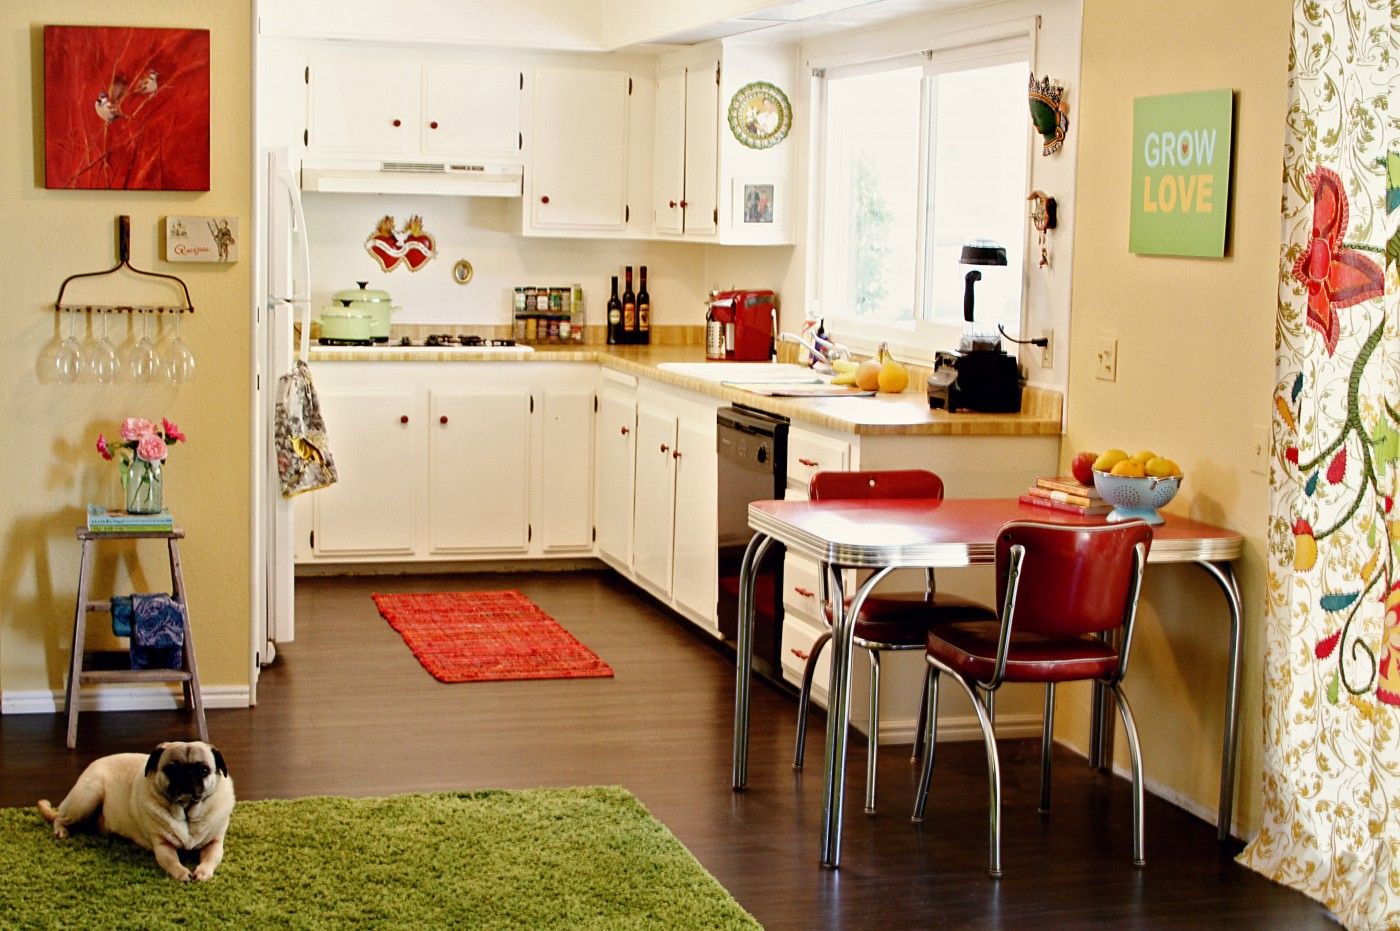 mobile home rental-orange accent rug in kitchen